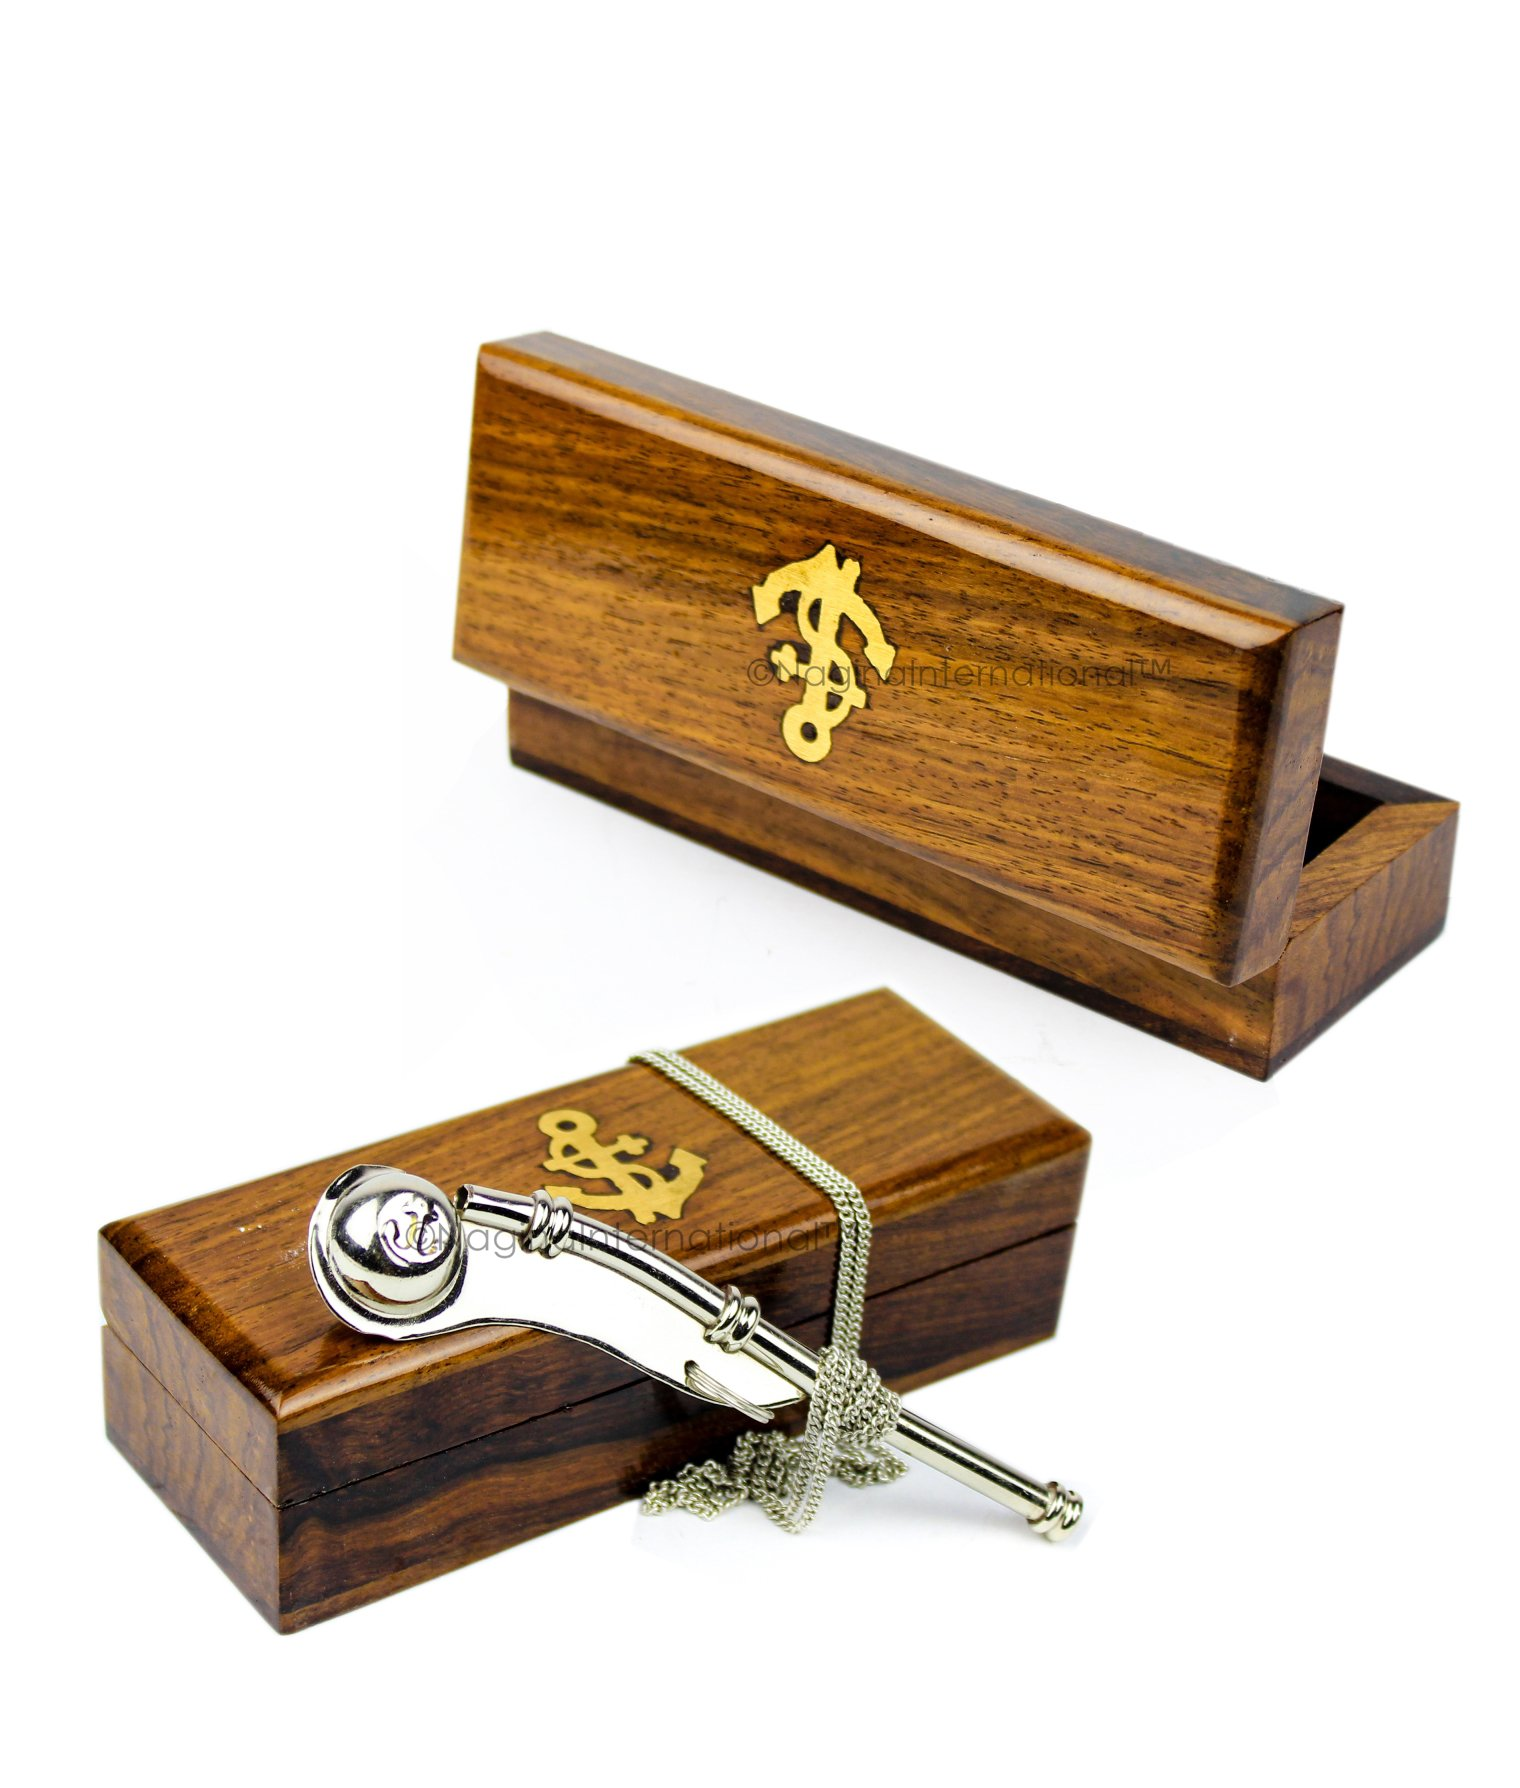 Boatswain's Brass Crafted Bosun's Pipe Whistle With Chain & Handcrafted Rosewood Anchor Inlayed Case | Pirate's Decor Collection | Maritime Decor | Nagina International (Nickel Plated W/ Box) by Nagina International